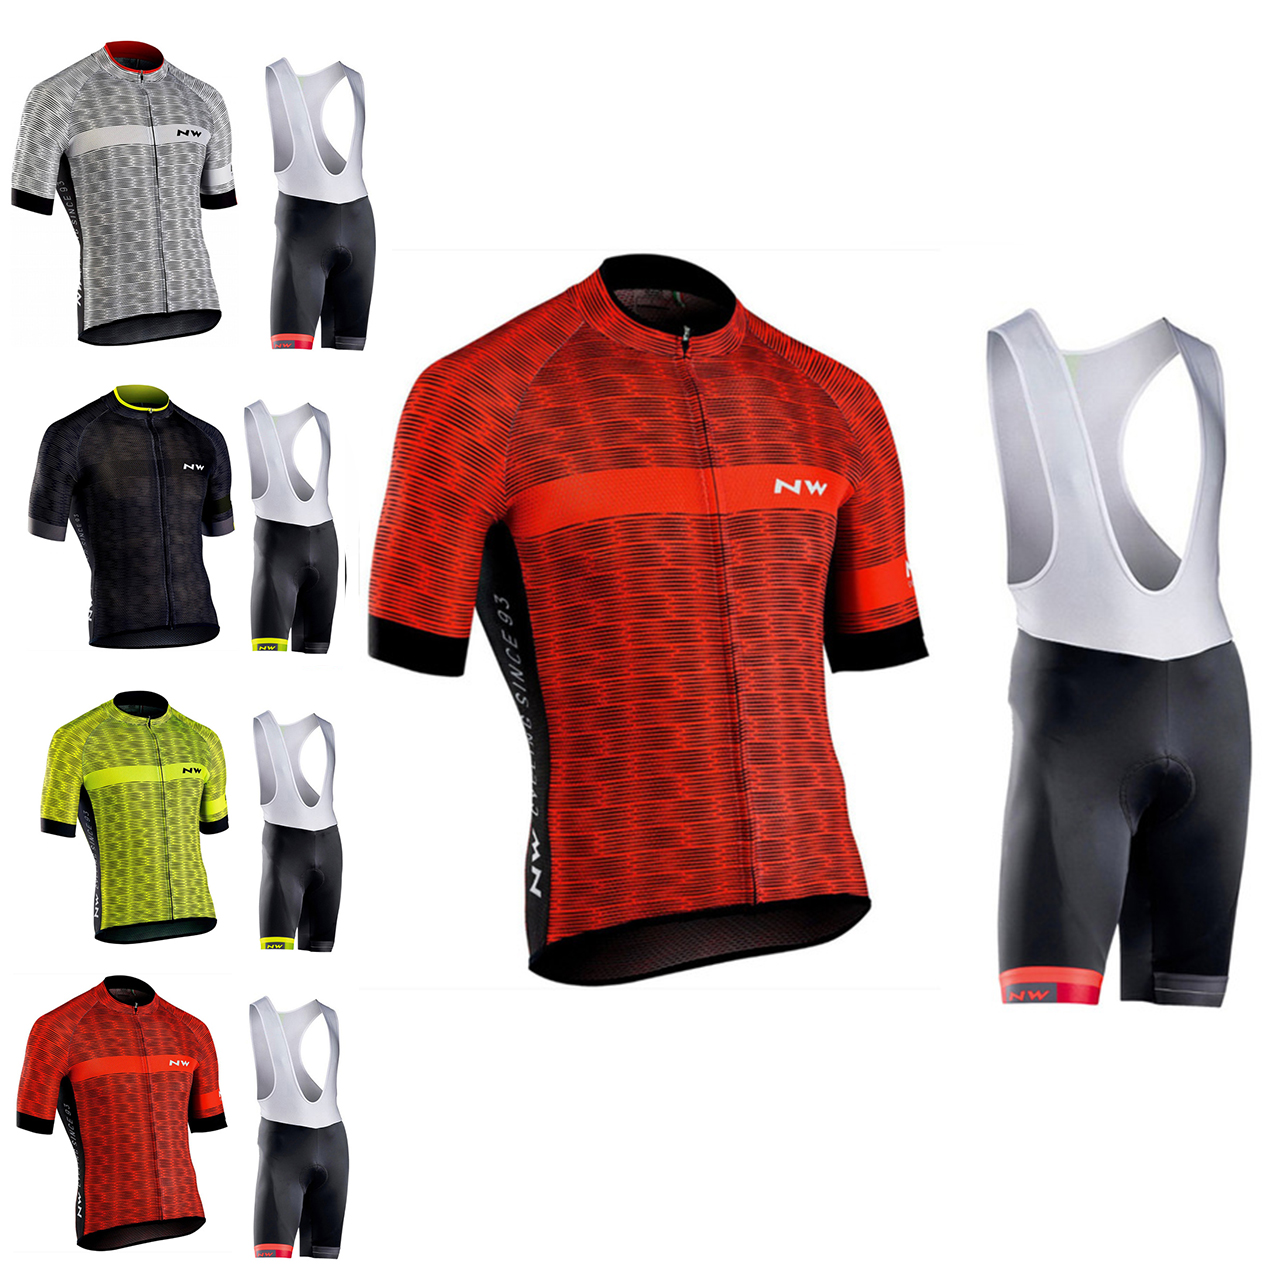 2018 NW Northwave Cycling jersey Set Summer Bicycle Clothing Maillot Ropa Ciclismo MTB Bike Clothes Sportswear Suit Cycling 12d pad cycling jersey set bike clothing summer breathable bicycle jerseys clothes maillot ropa ciclismo cycling set